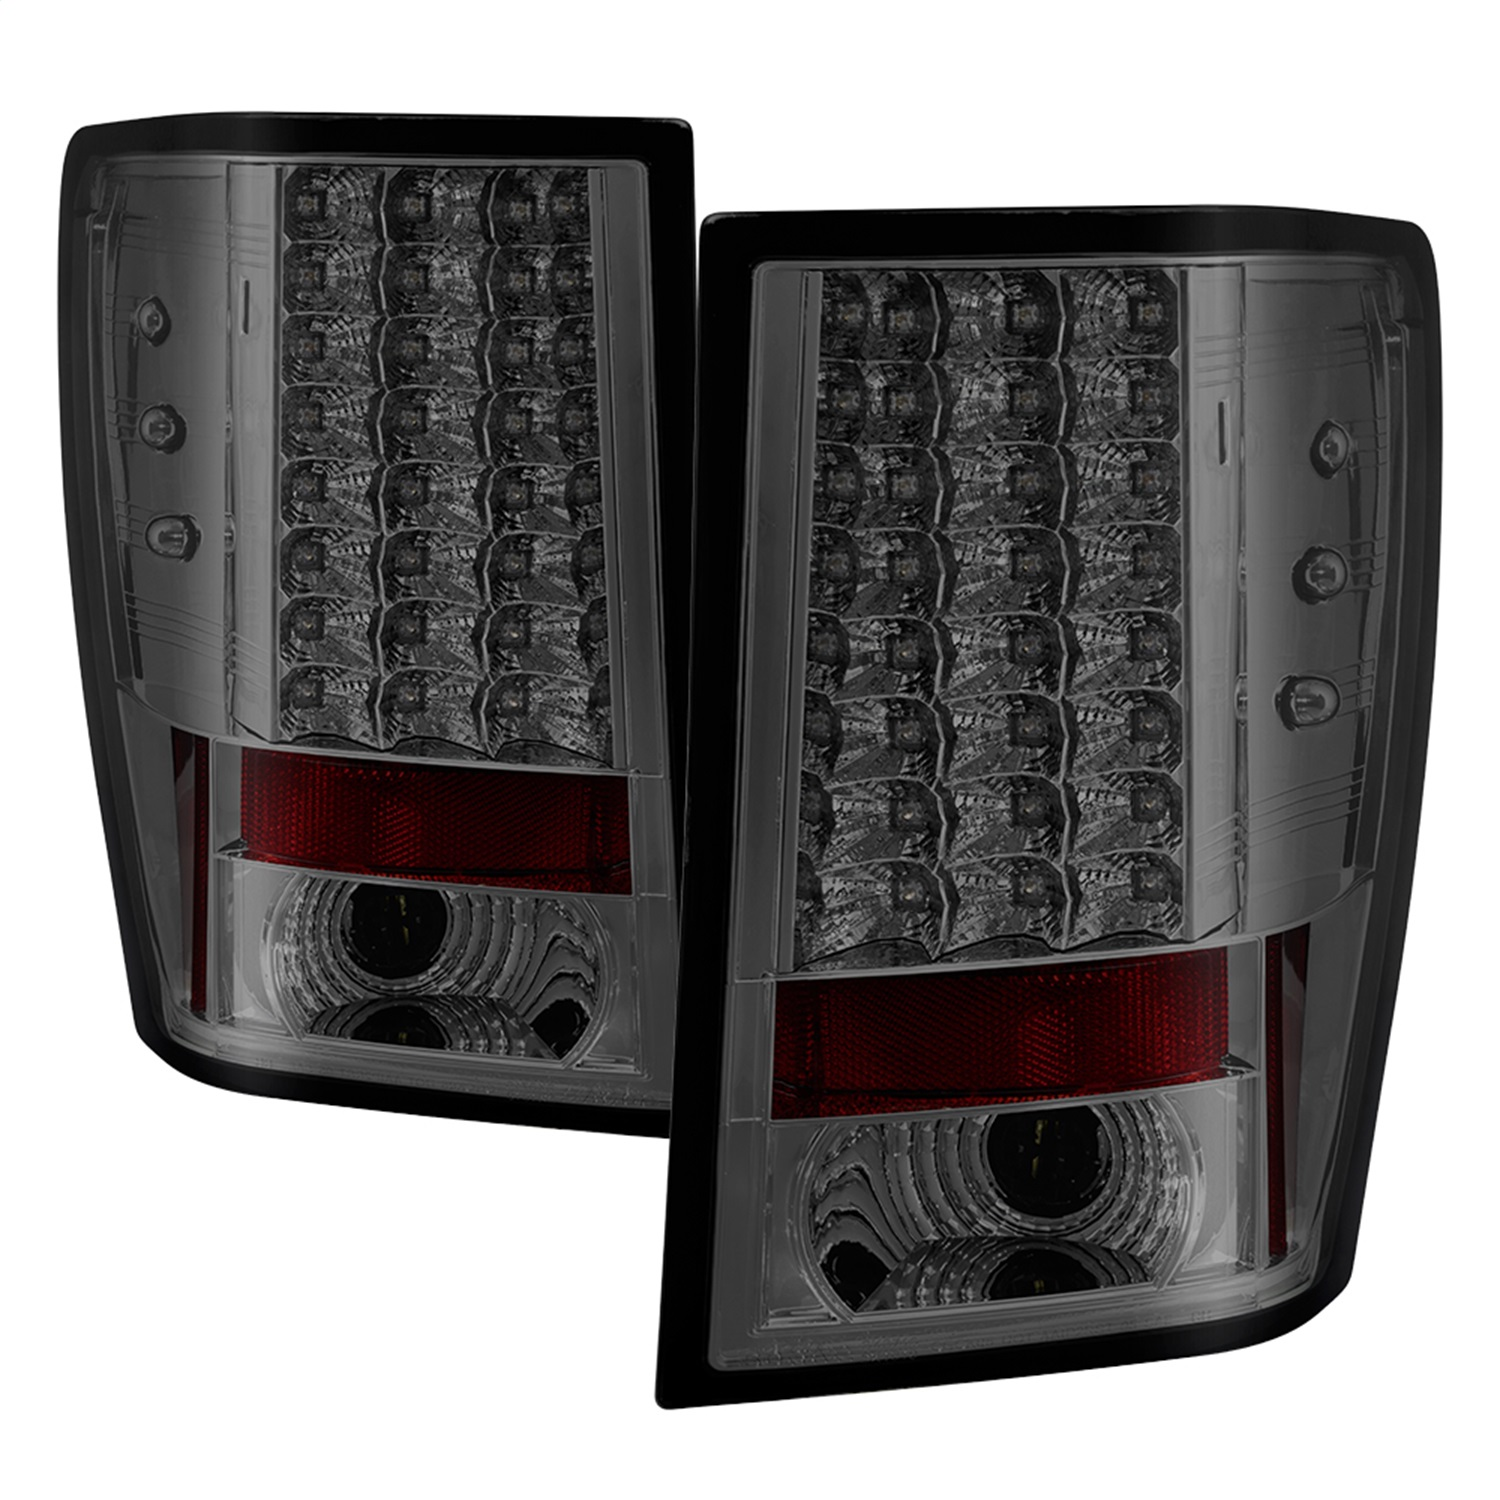 Spyder Auto 5070227 LED Tail Lights Fits 07-10 Grand Cherokee